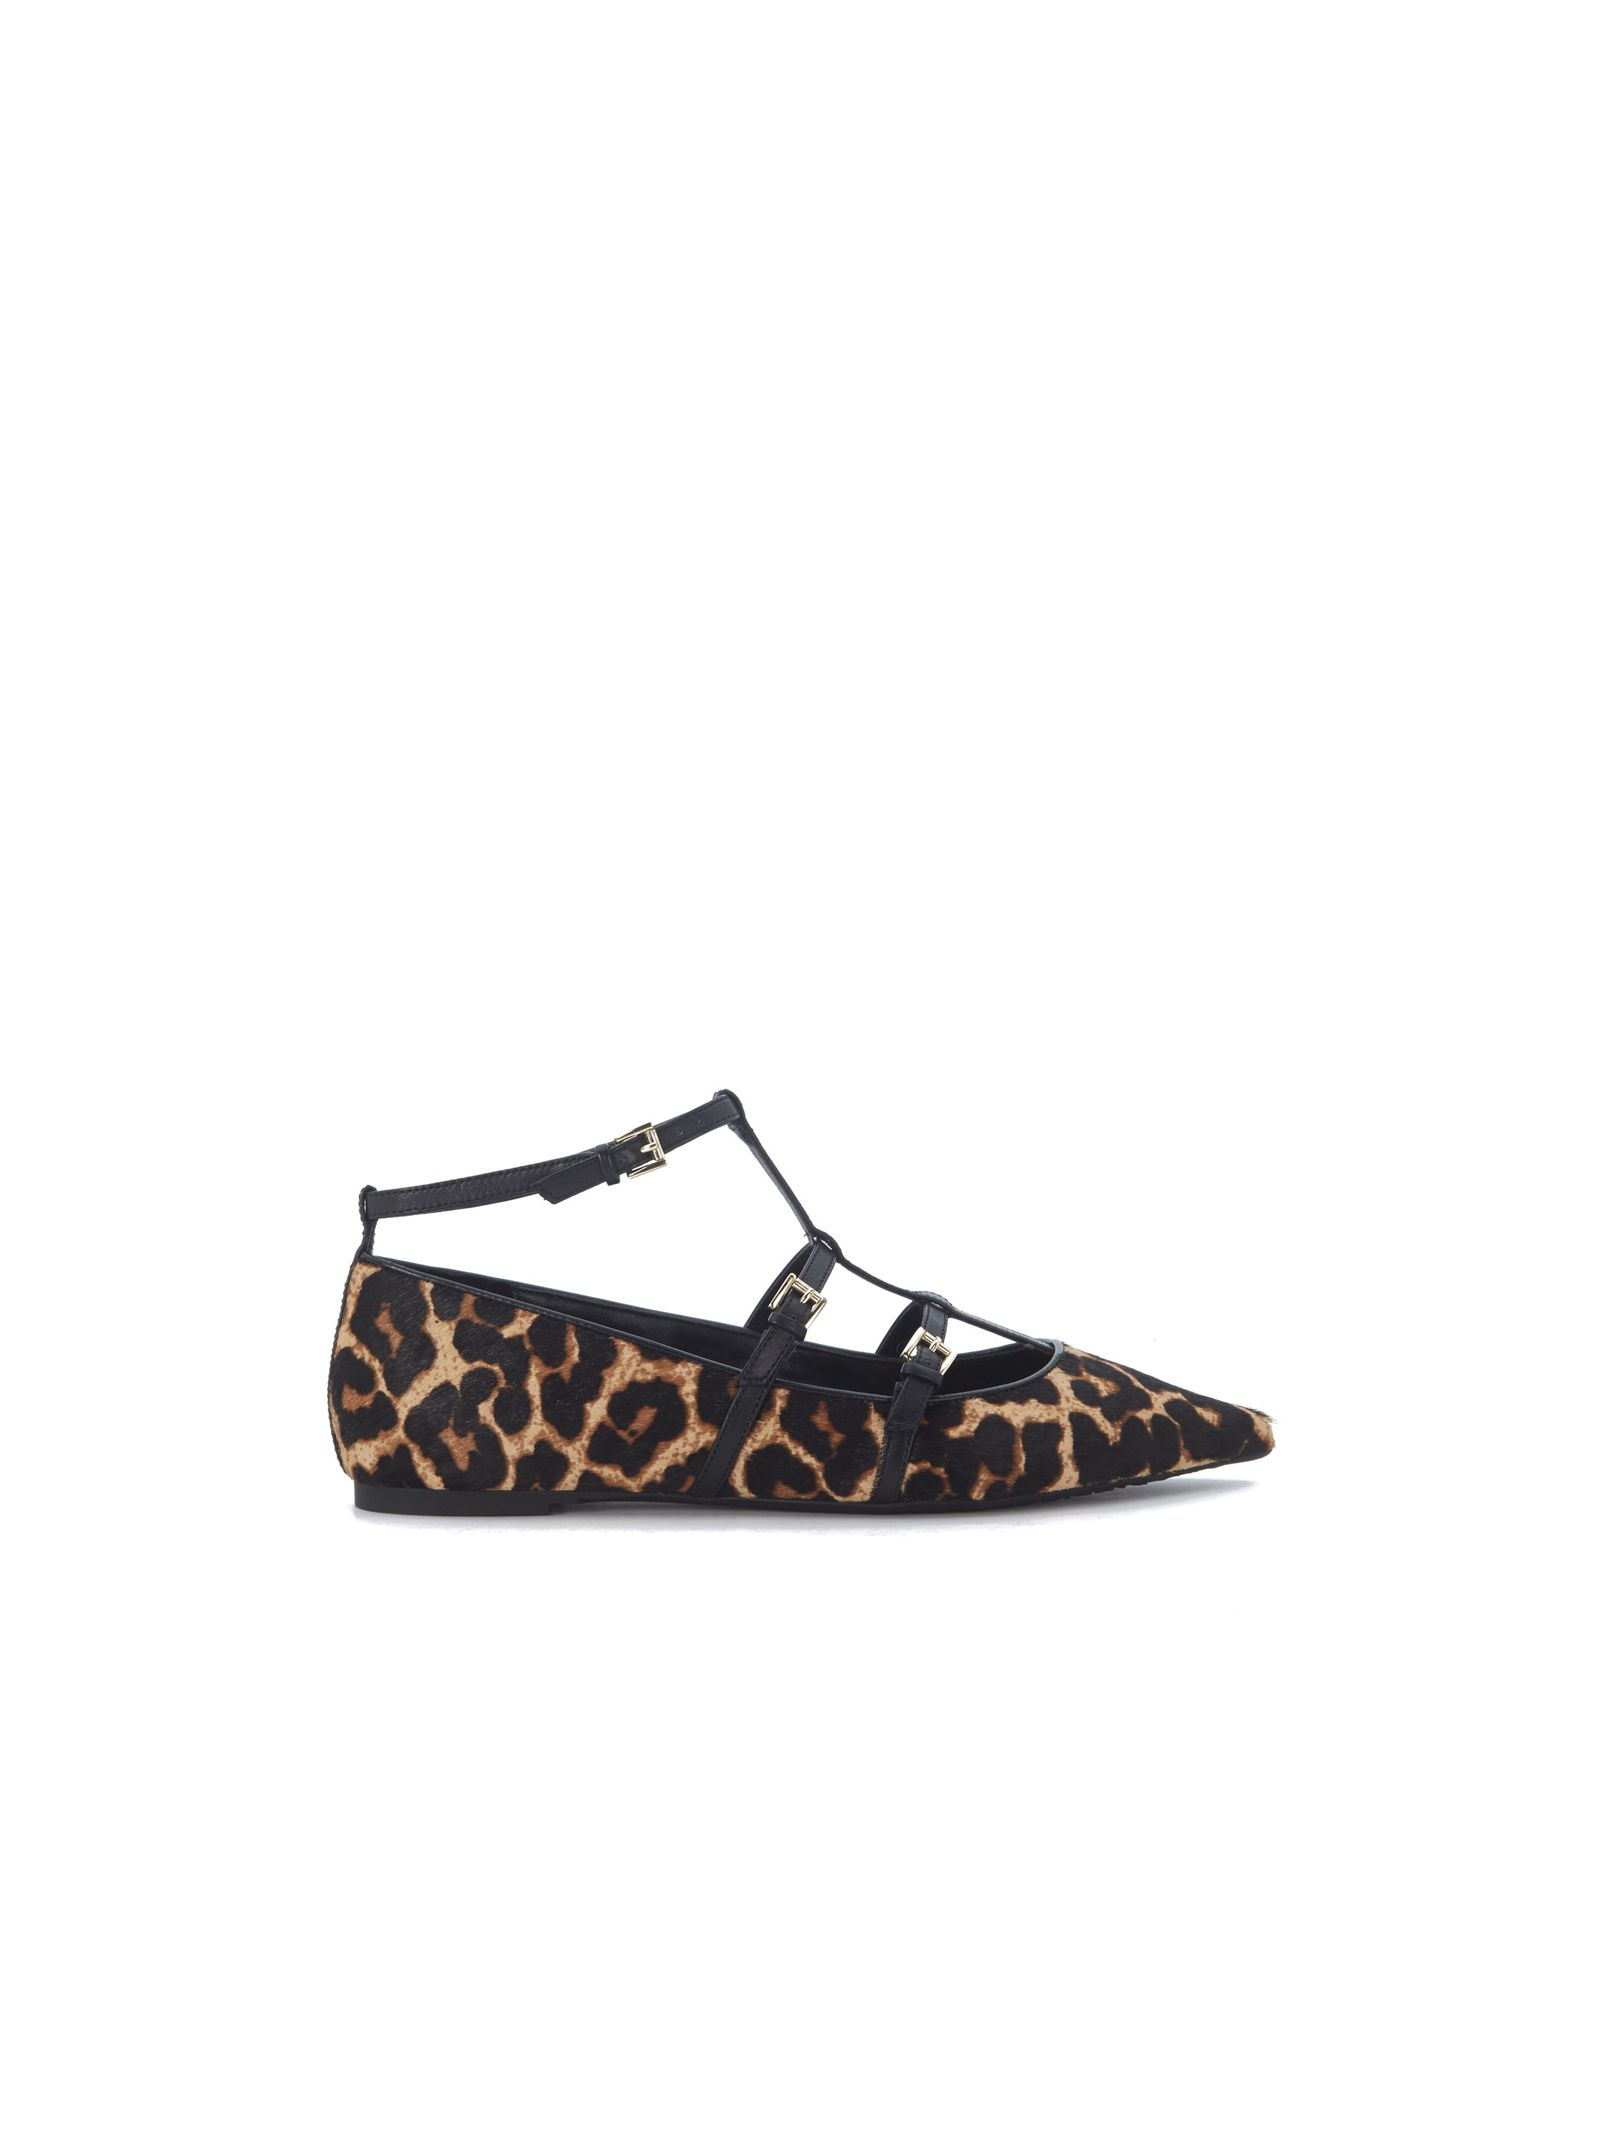 michael kors female 48874 michael kors marta flat shoes in spotted cow hair with buckles